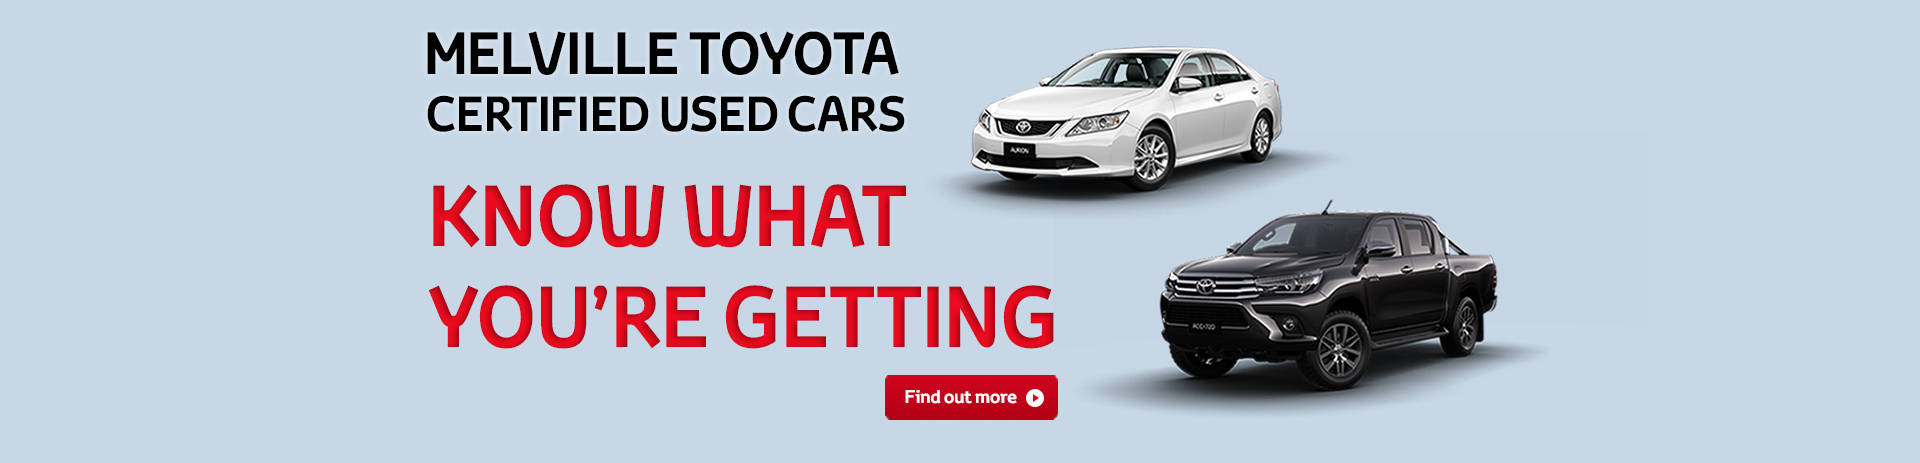 Melville Toyota Certified Used Cars